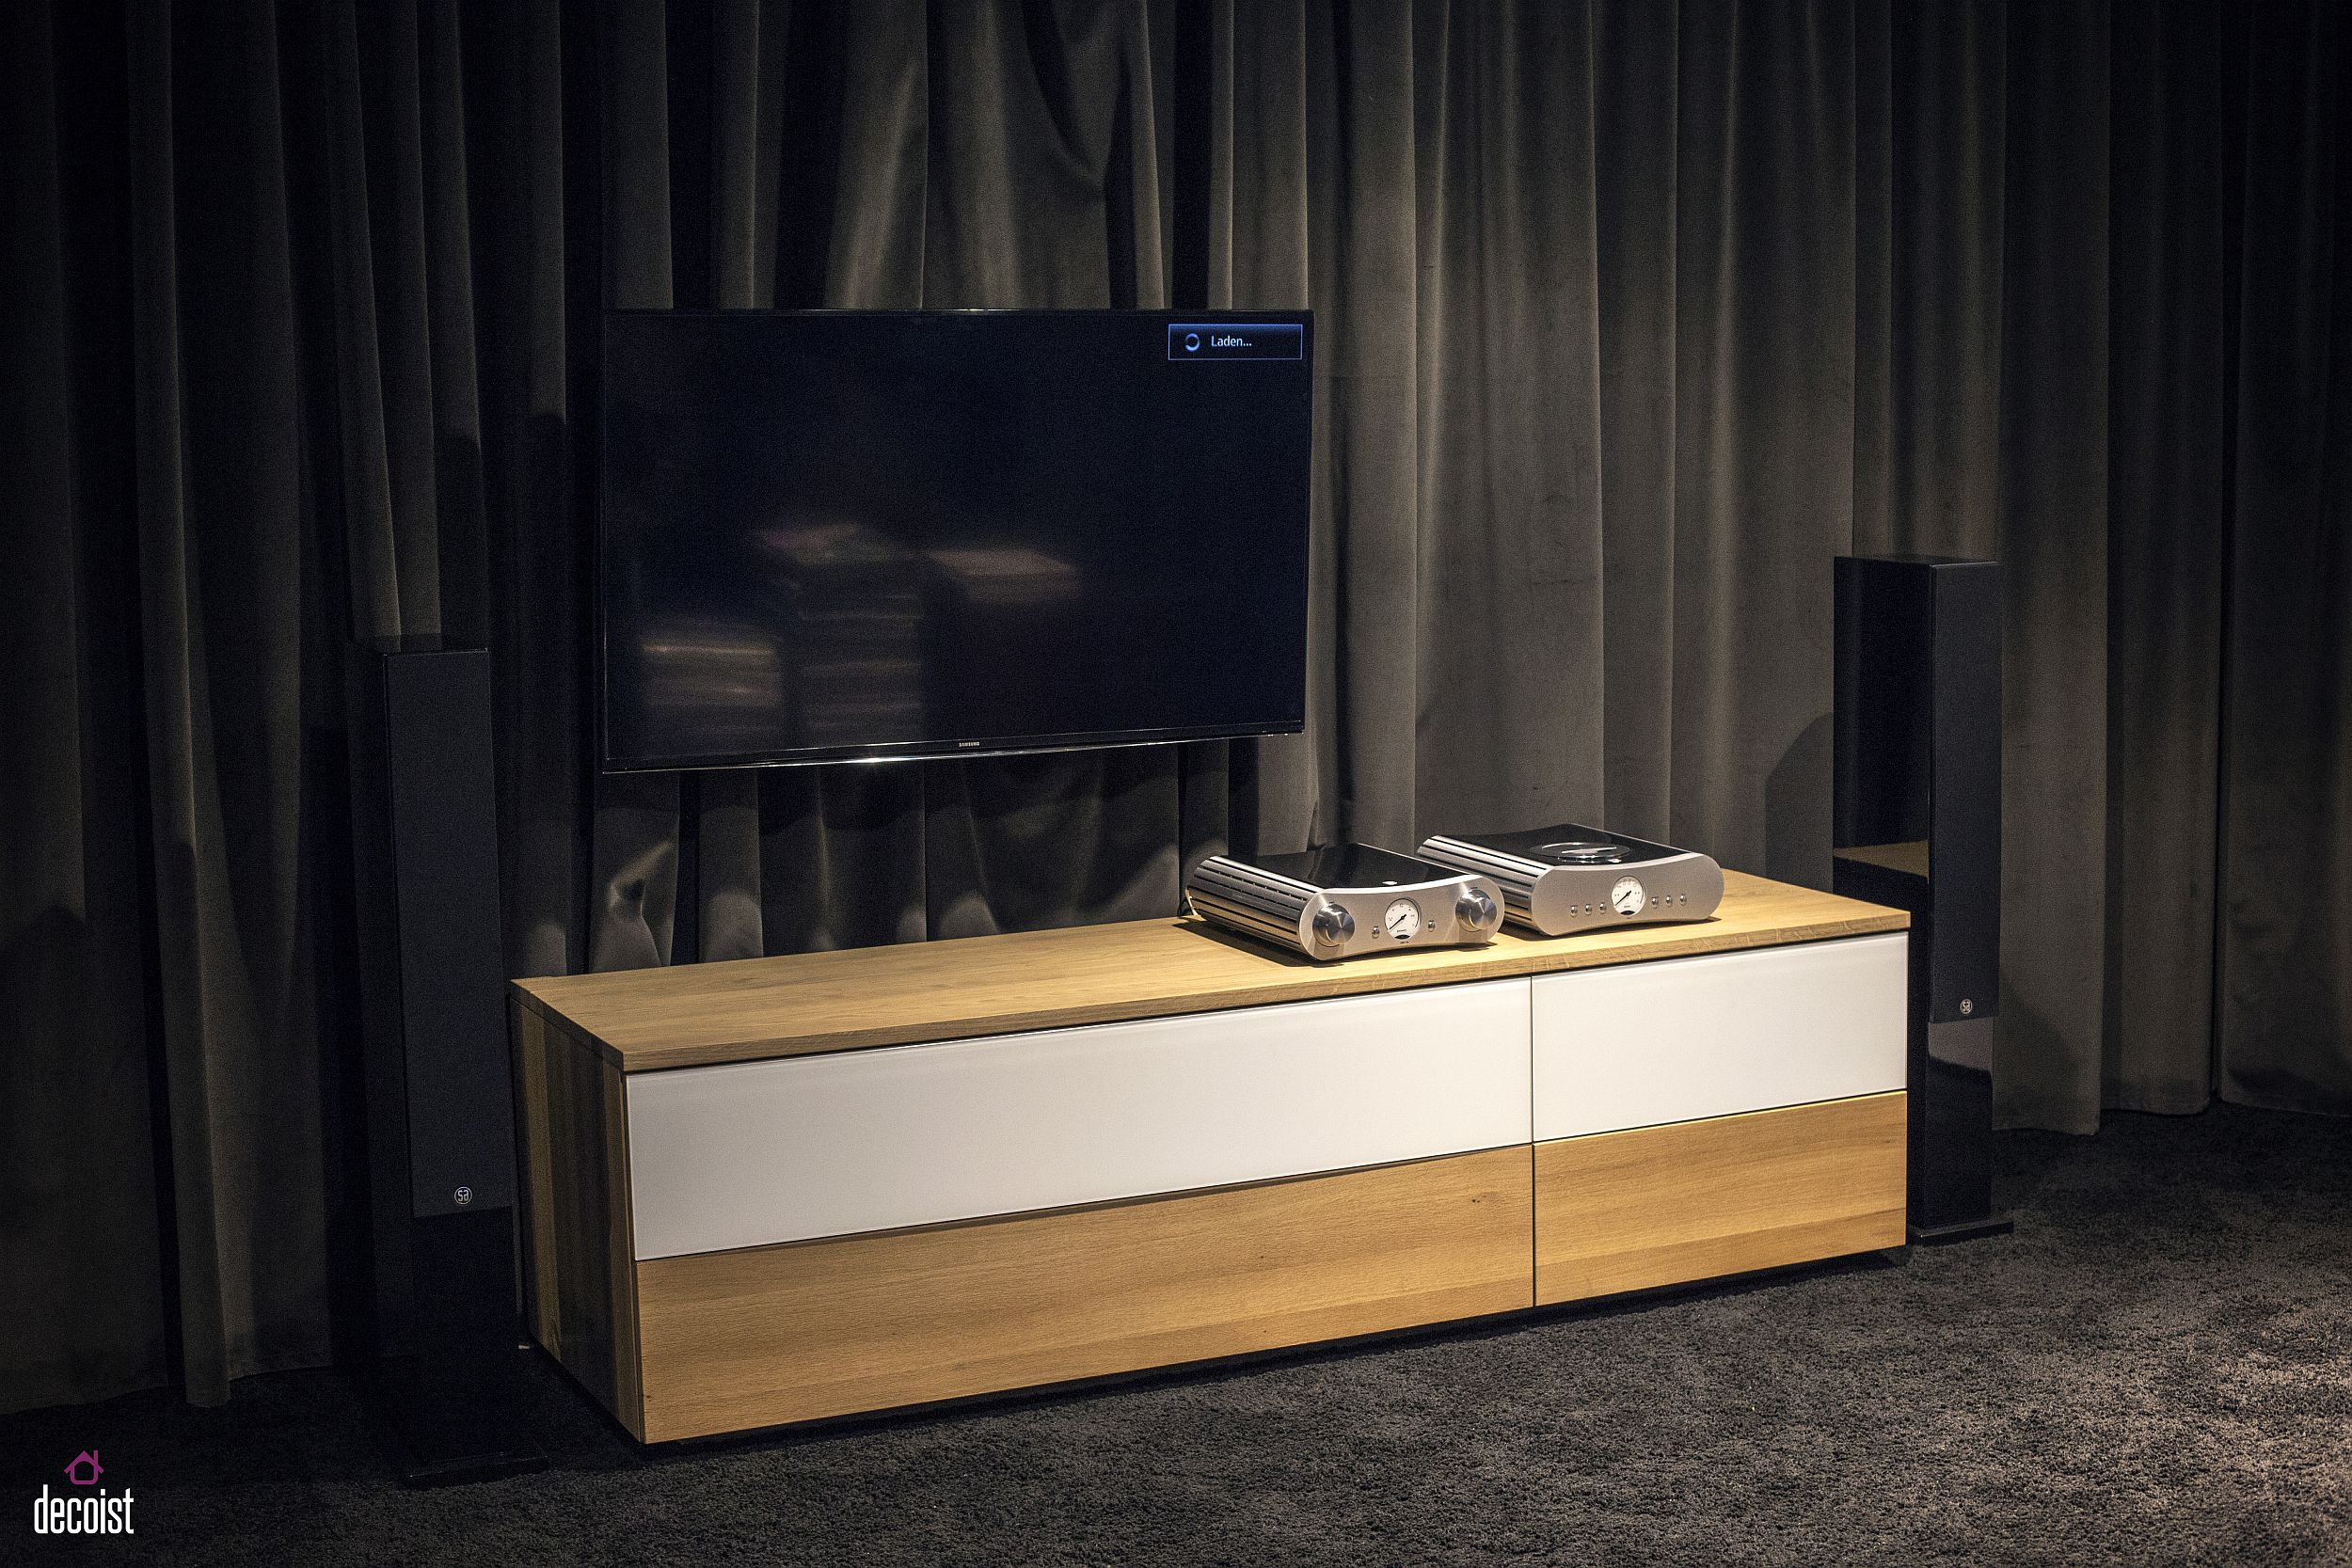 Ultra-small TV cabinet for the tiny living room